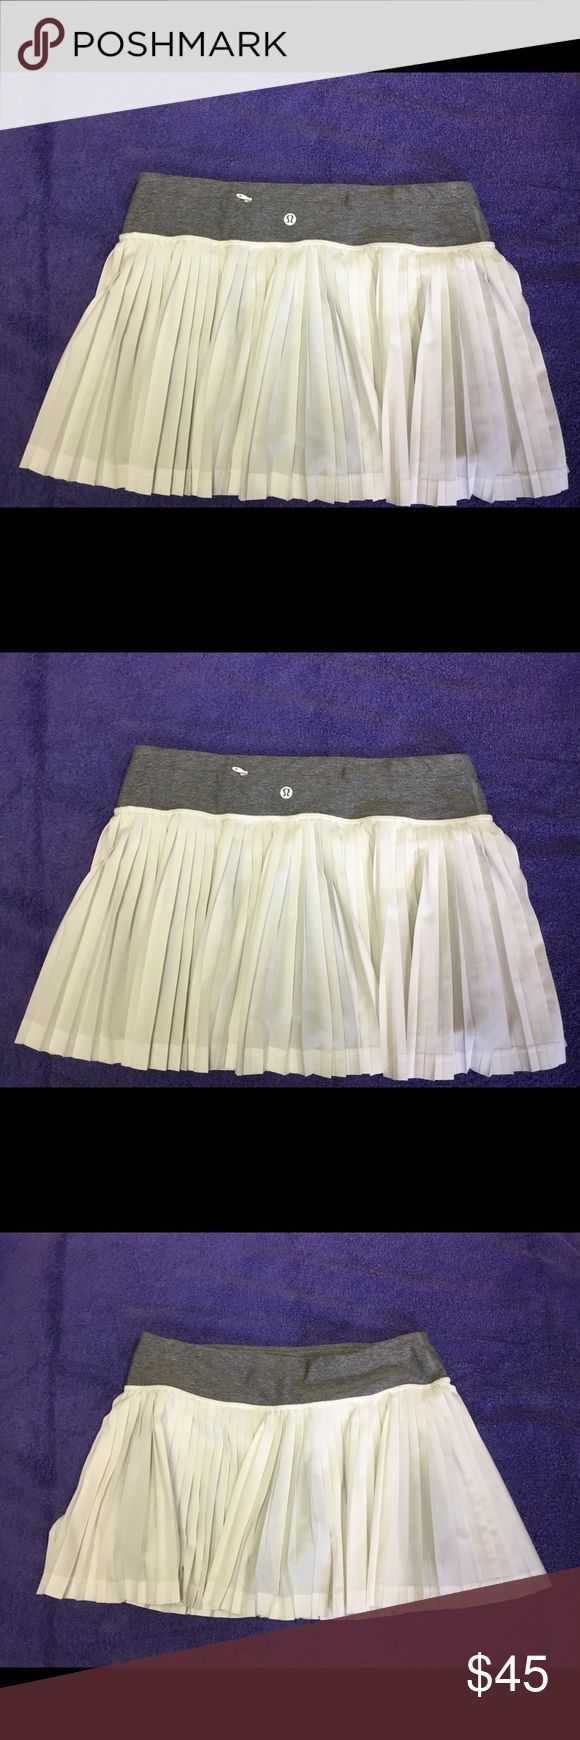 Lululemon skirt . Size 6 white and gray . White and grey tennis skort.  Lululemon-Size 6; material - polyester, nylon and Lycra; Waist - 15in., Length-13in., Shorts inseam-3 1/2in.  Zippered pocket for key or change. No damage, been worn twice. lululemon athletica Shorts Skorts